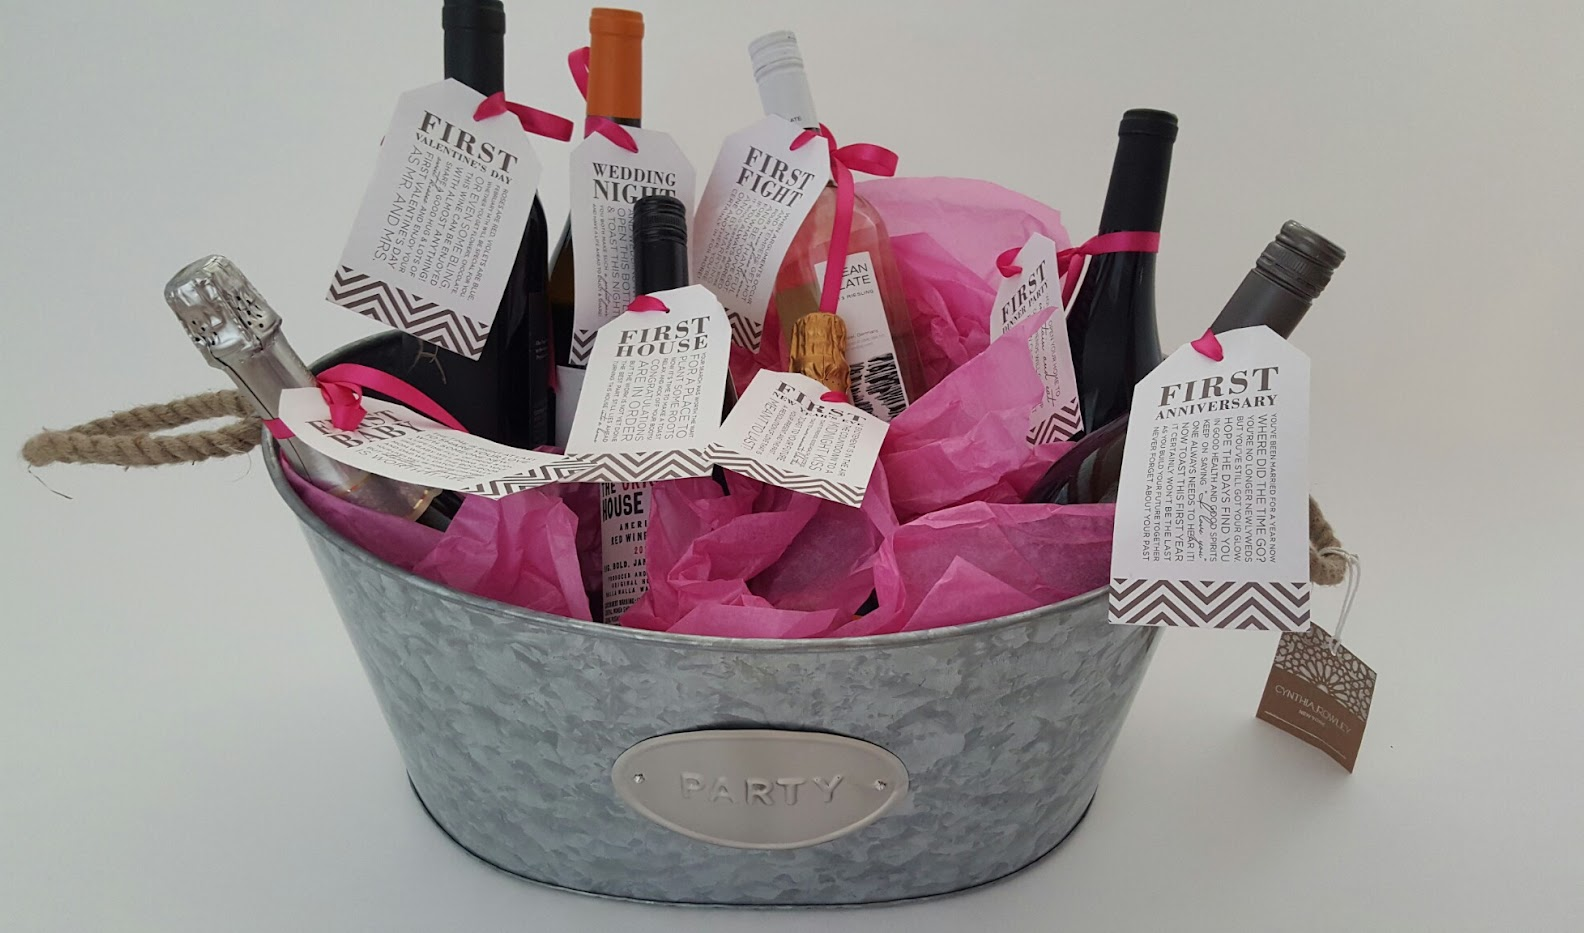 Bridal Shower Wine Gift Basket Ideas : Bridal Shower Gift DIY to Try: A Basket of ?Firsts? for the Bride ...